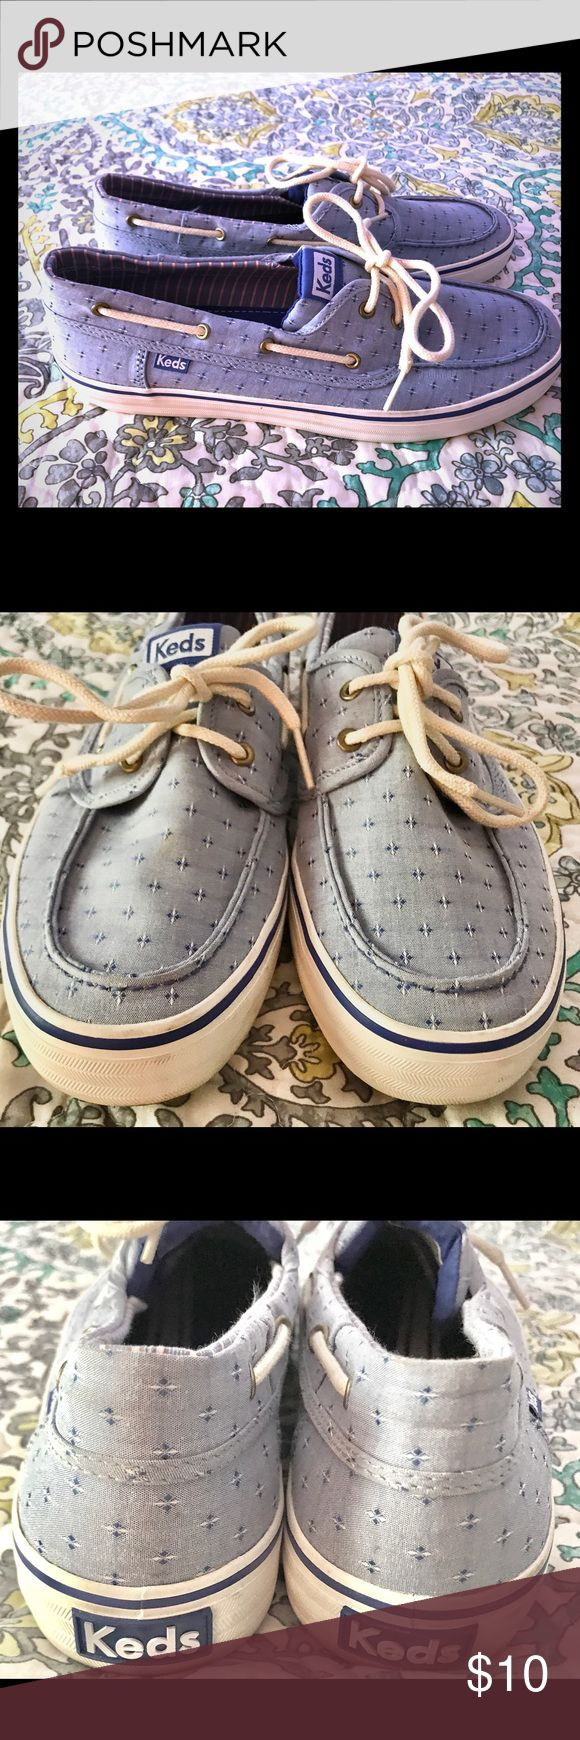 Keds Blue Boat Shoes Keds Blue Size 10 Good Condition Keds Shoes Flats & Loafers